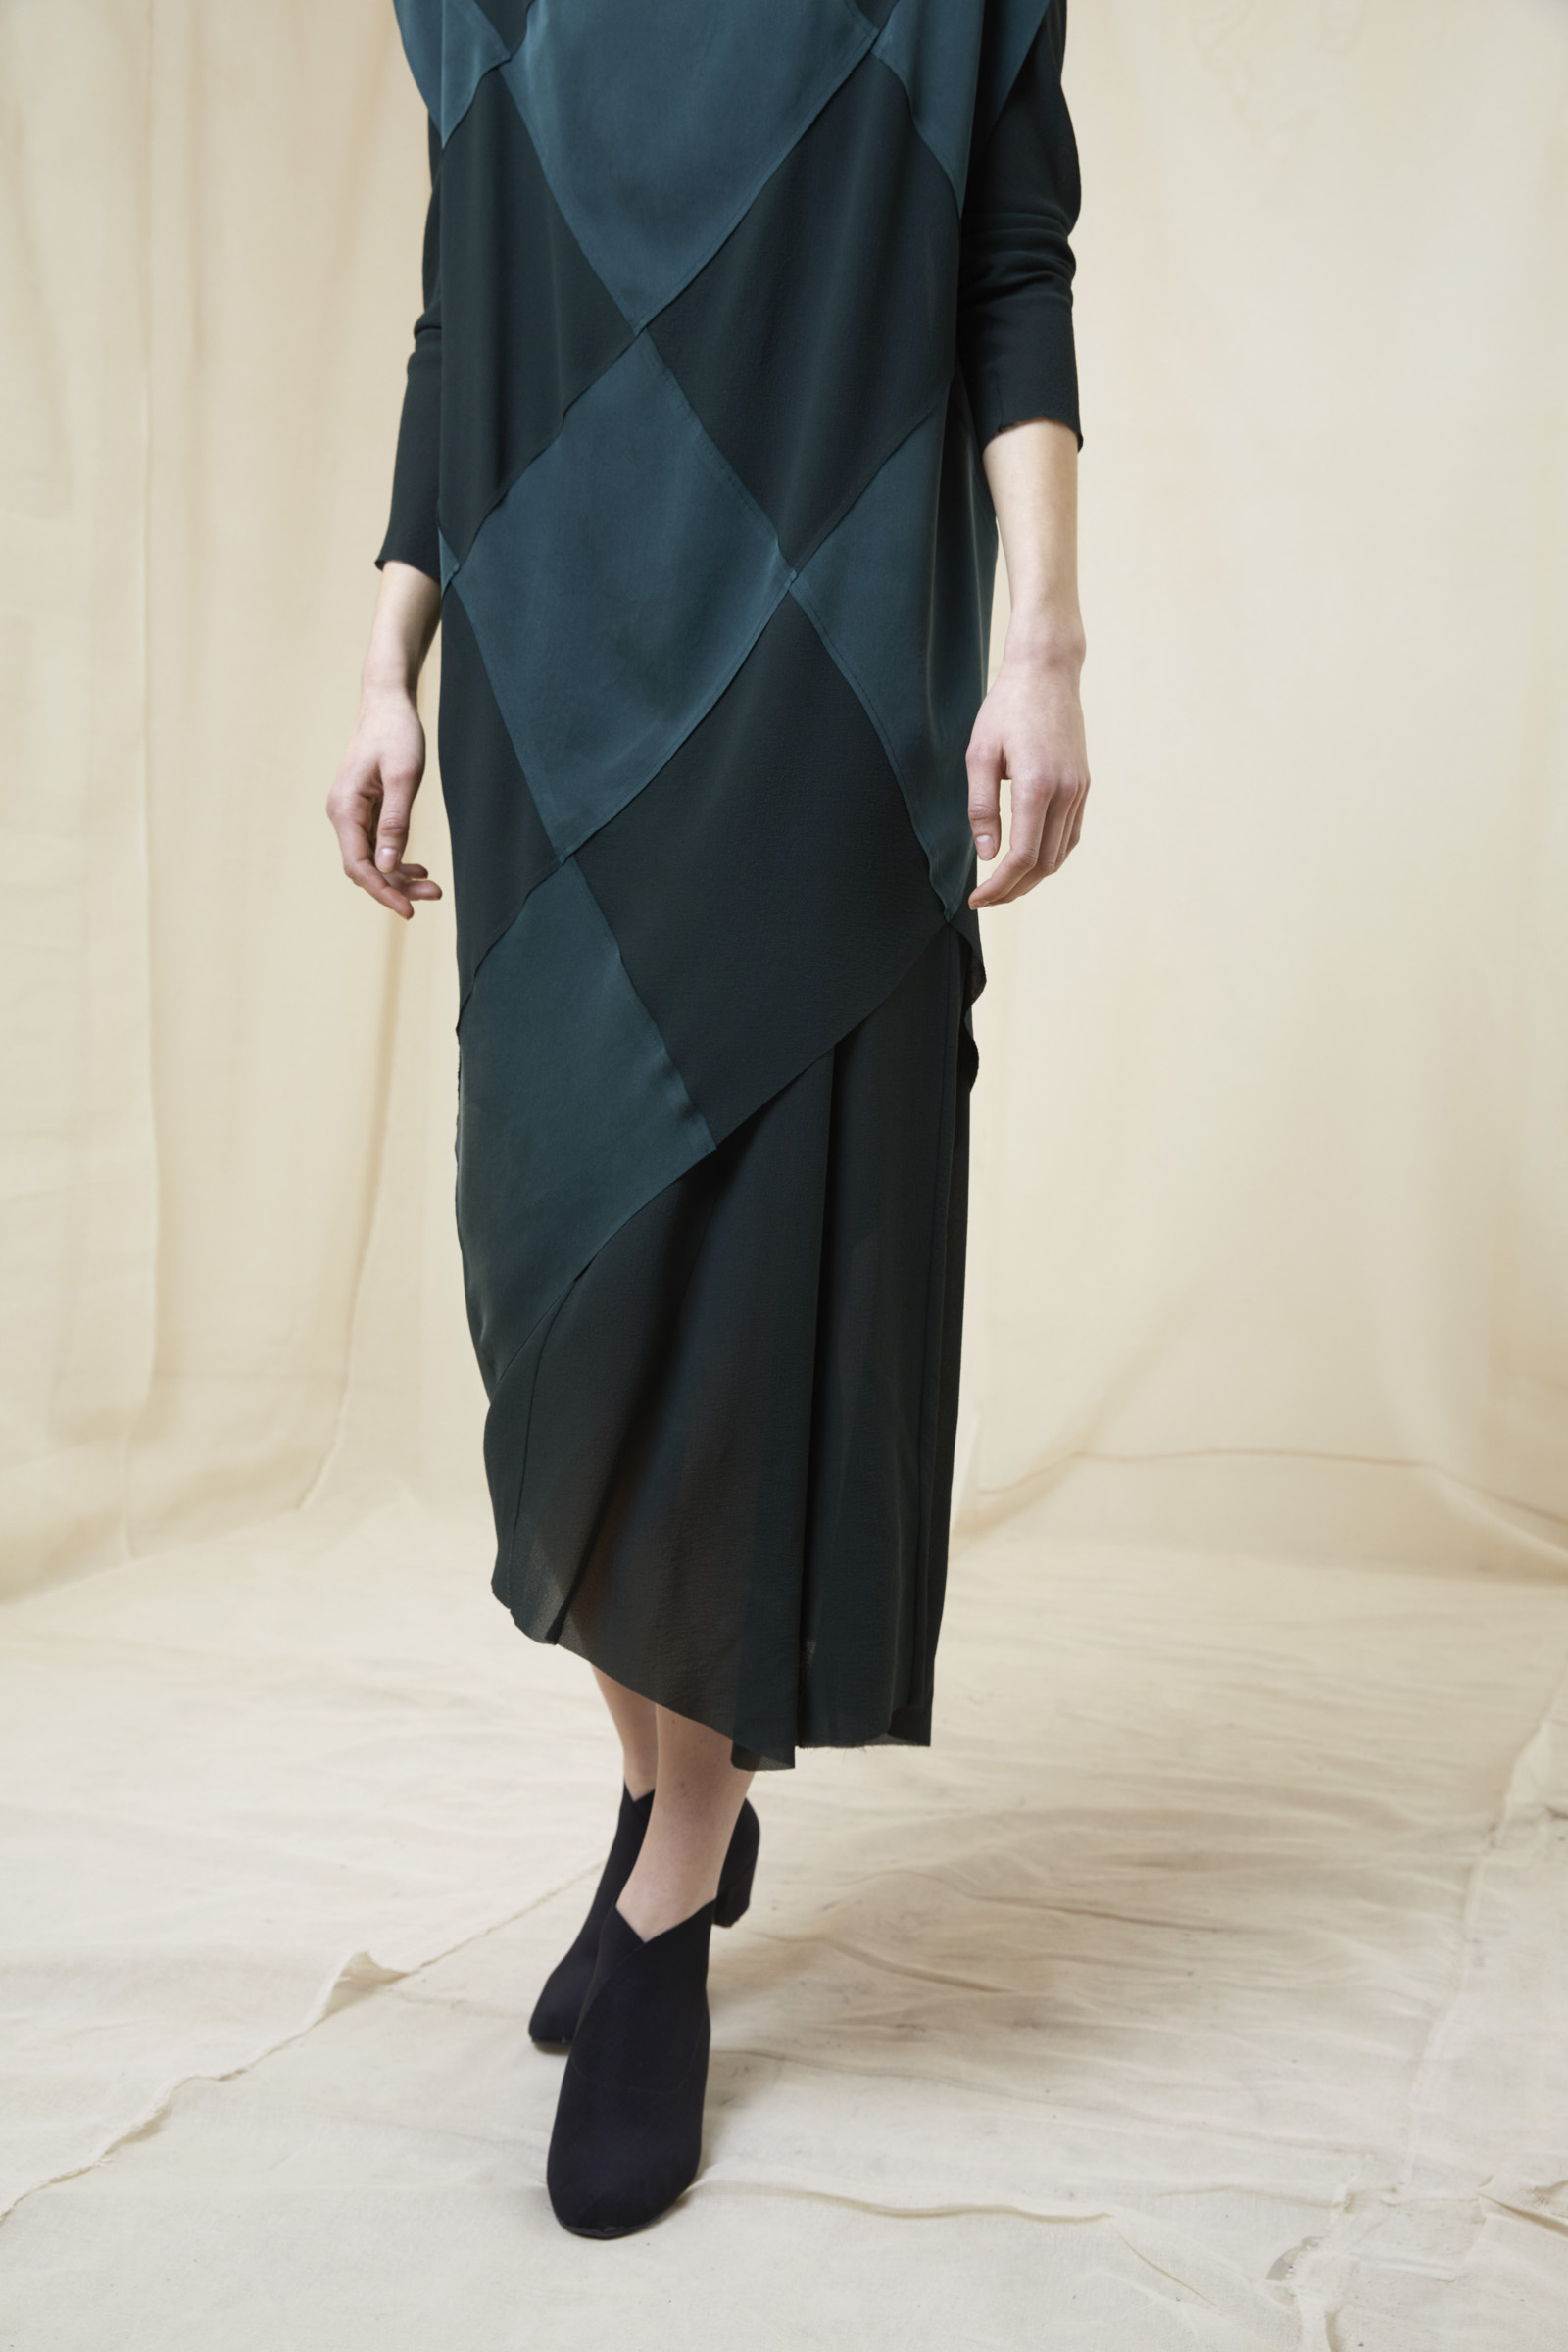 DIAMOND GREEN SILK DRESS - Cortana